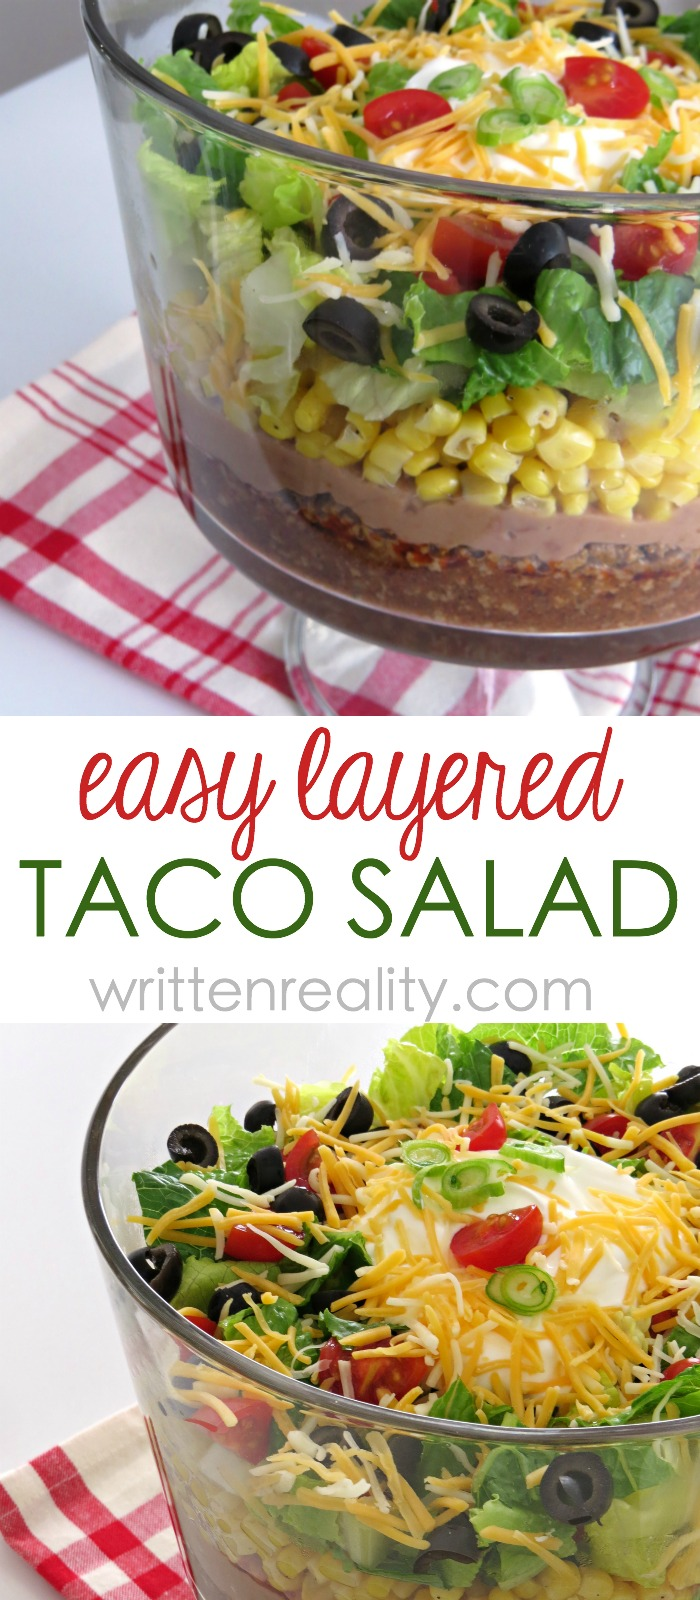 Easy Layered Taco Salad Recipe